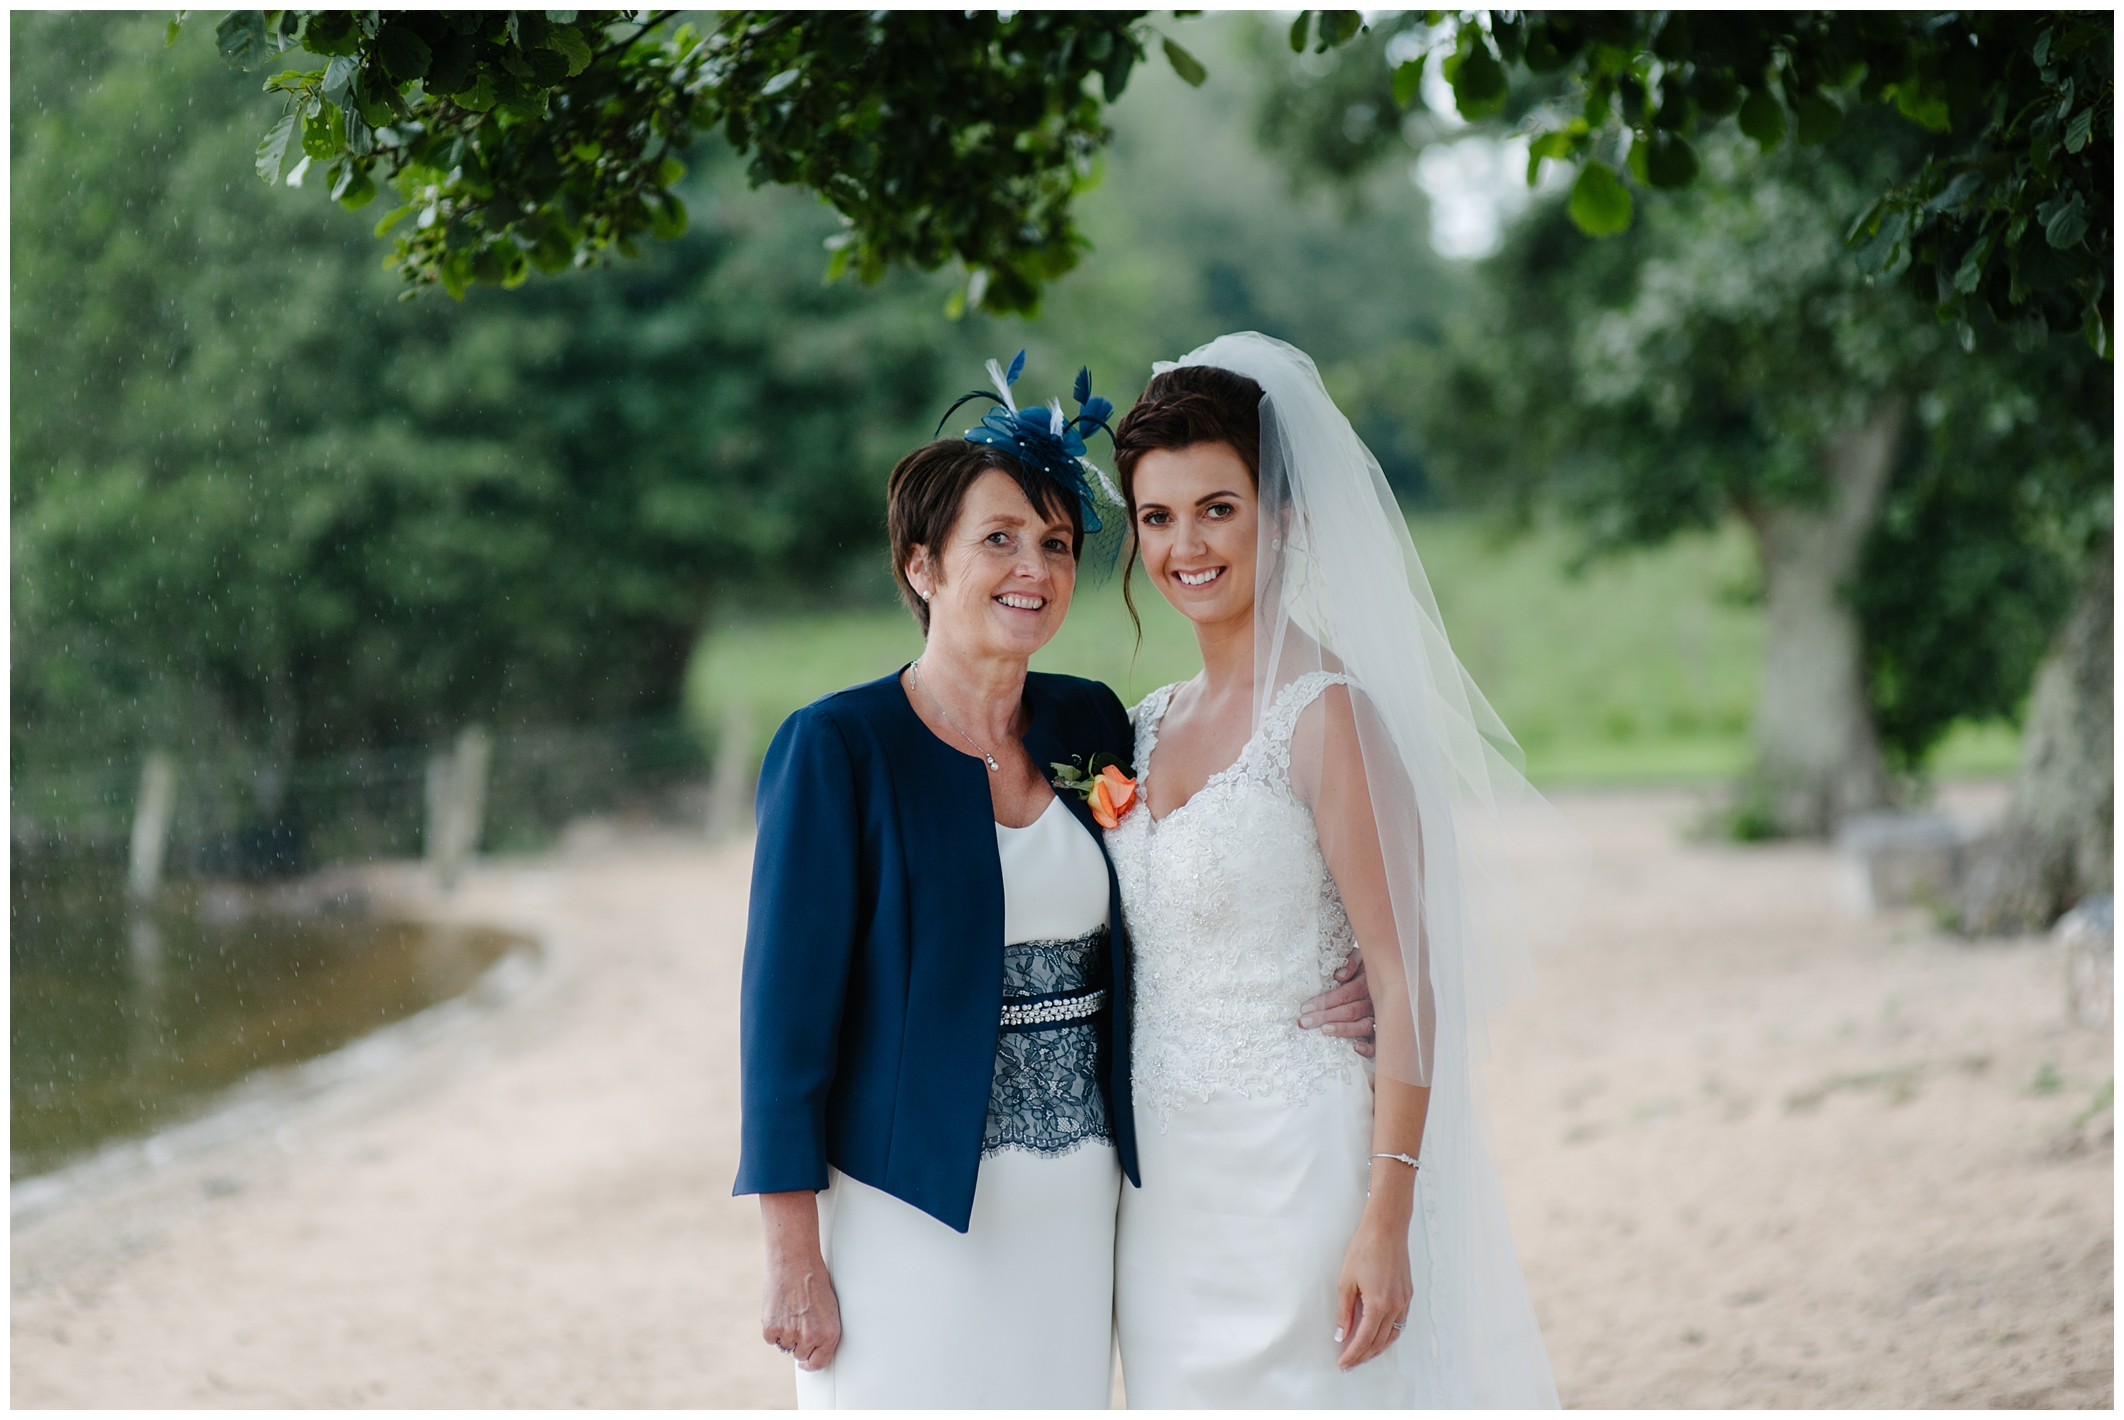 Lynsey_Andy_Rossharbour_Fermanagh_wedding_jude_browne_photography_0122.jpg